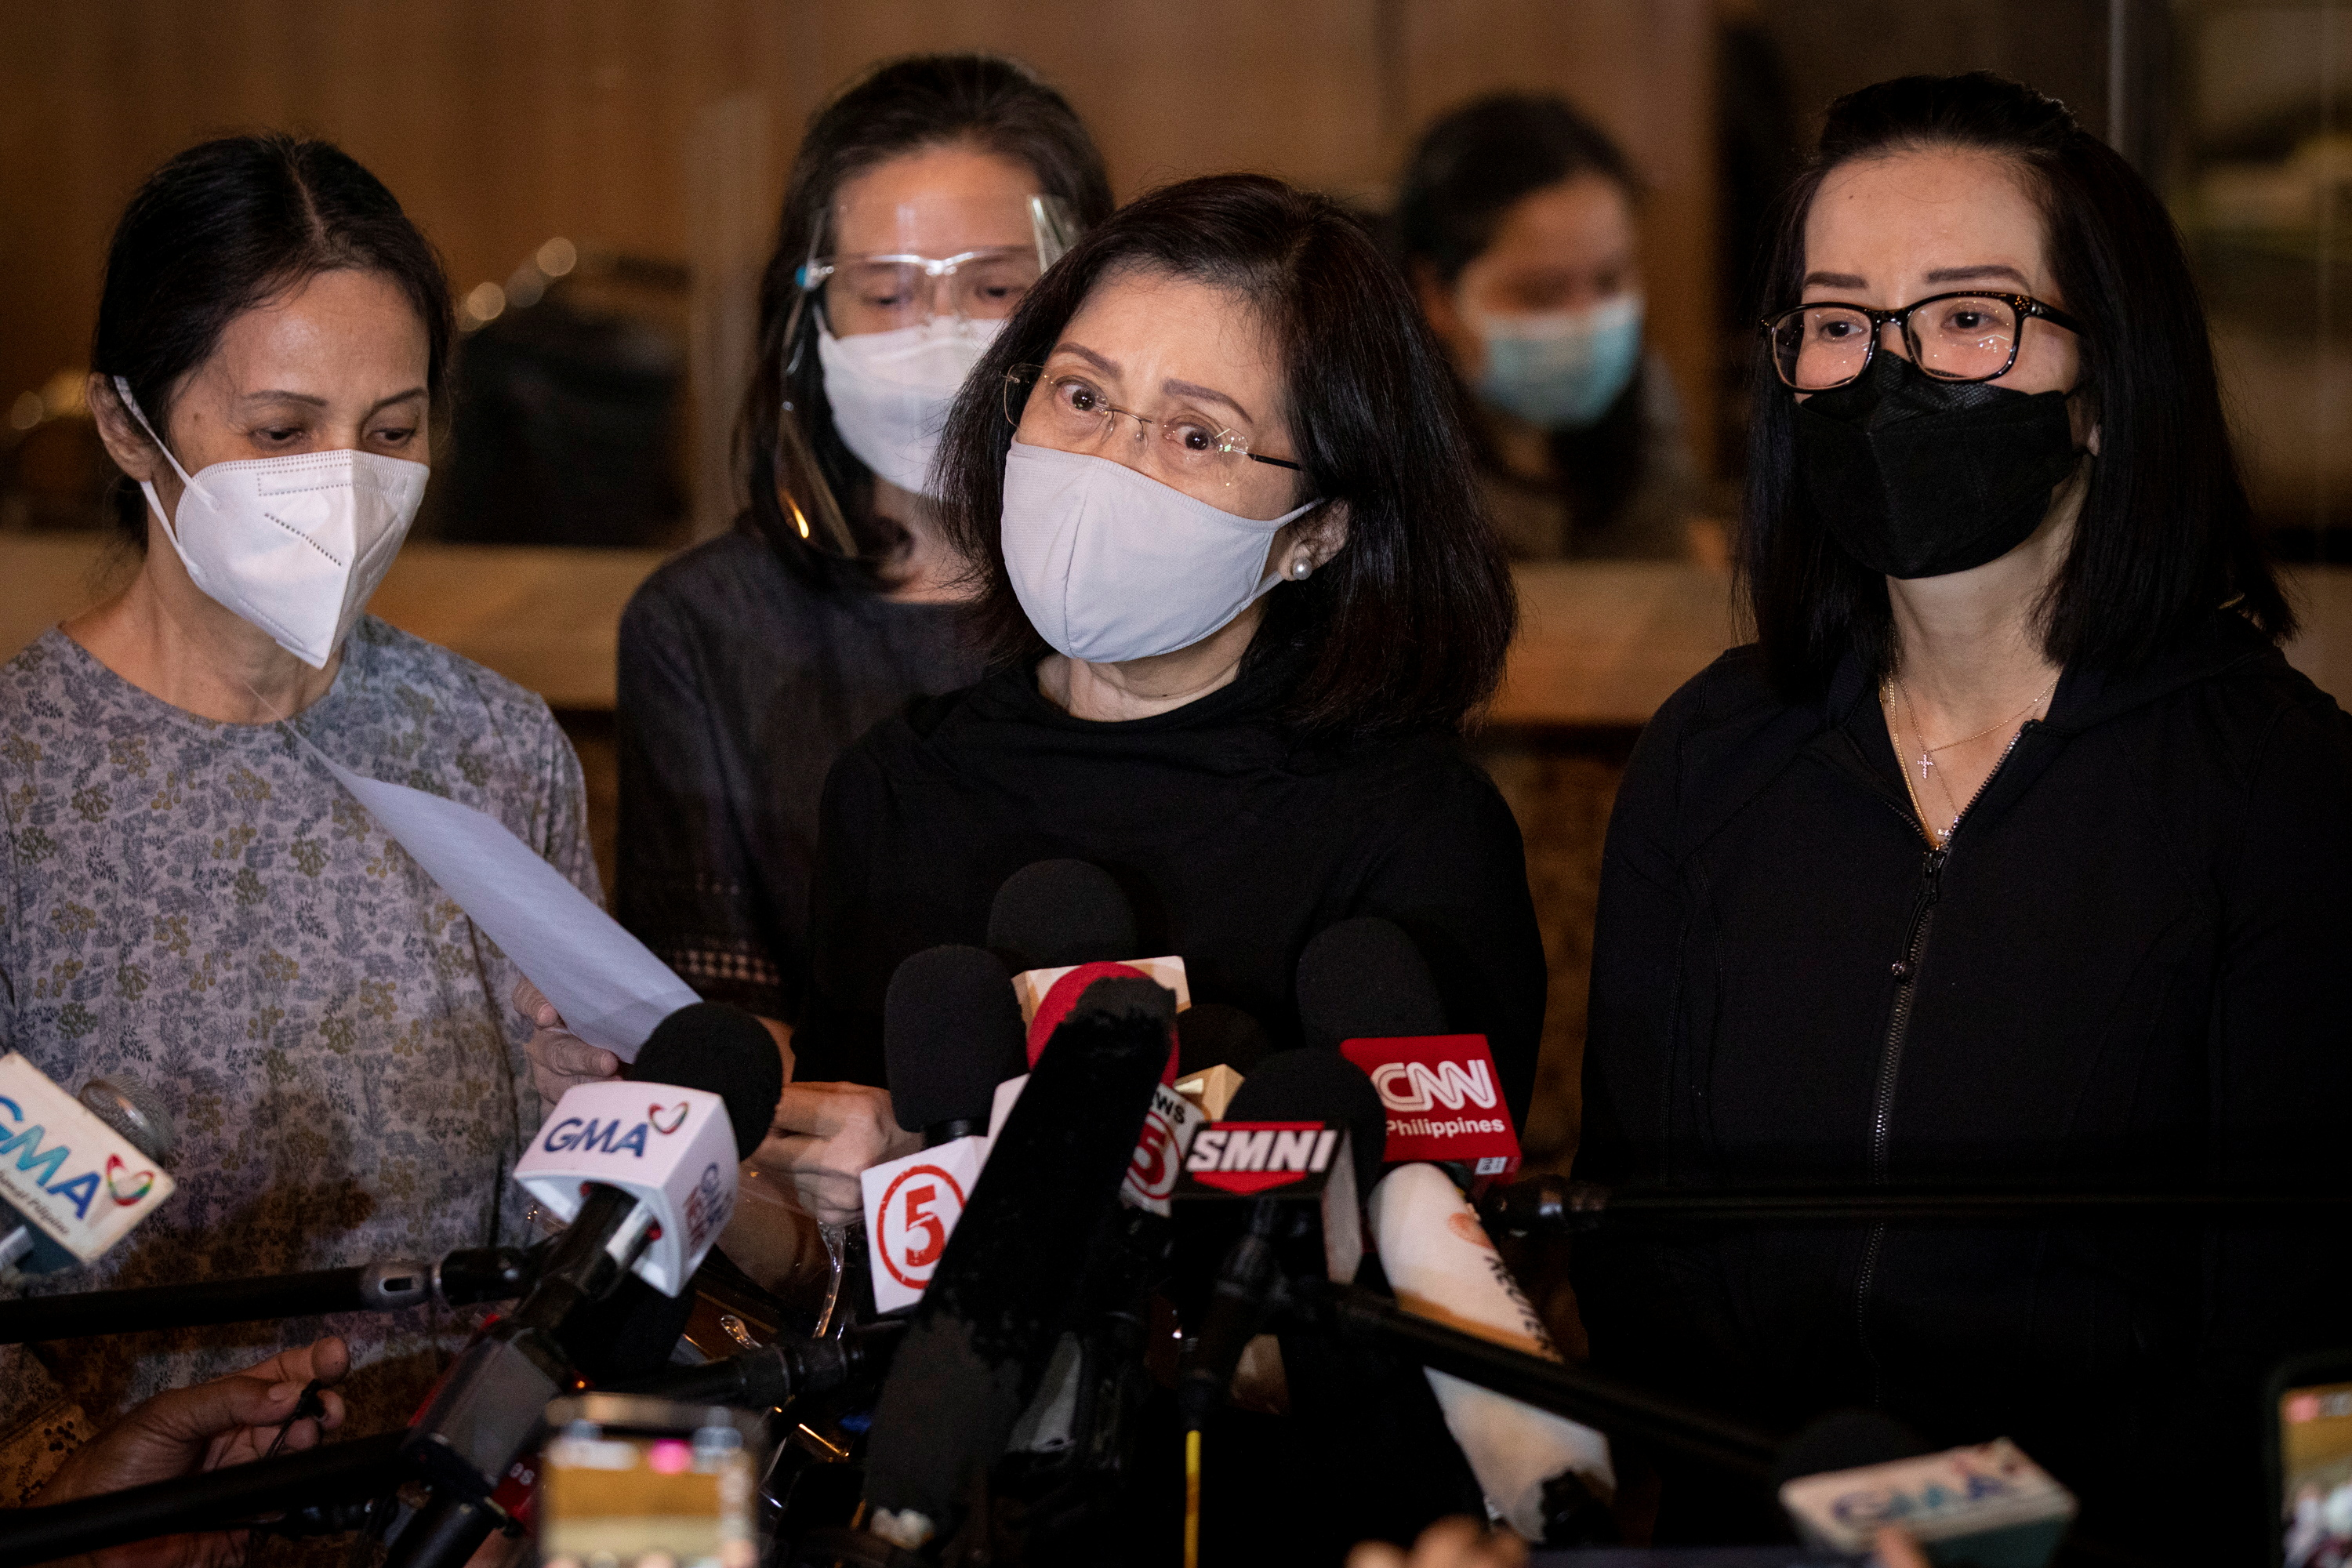 Sisters of former Philippine President Benigno Aquino speak to the media after the passing of their 61-year-old brother, at The Heritage Memorial Park in Taguig City, Philippines, June 24, 2021. REUTERS/Eloisa Lopez